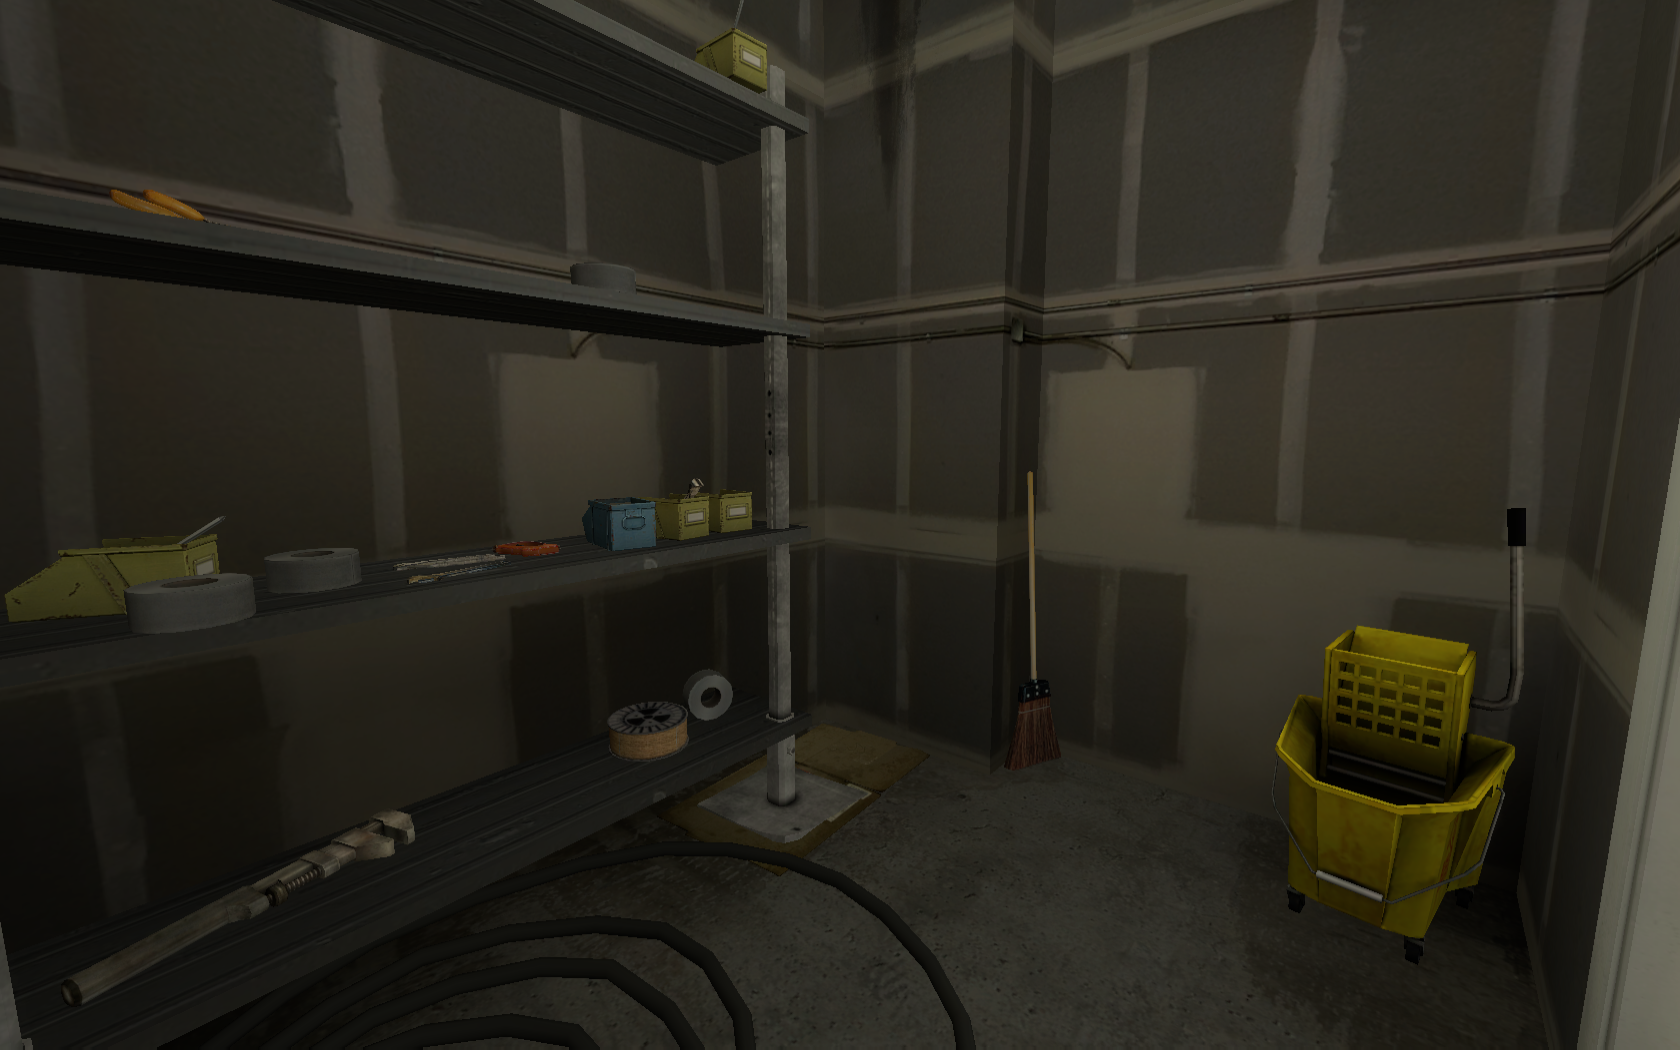 Broom Closet The Stanley Parable Wiki Fandom Powered